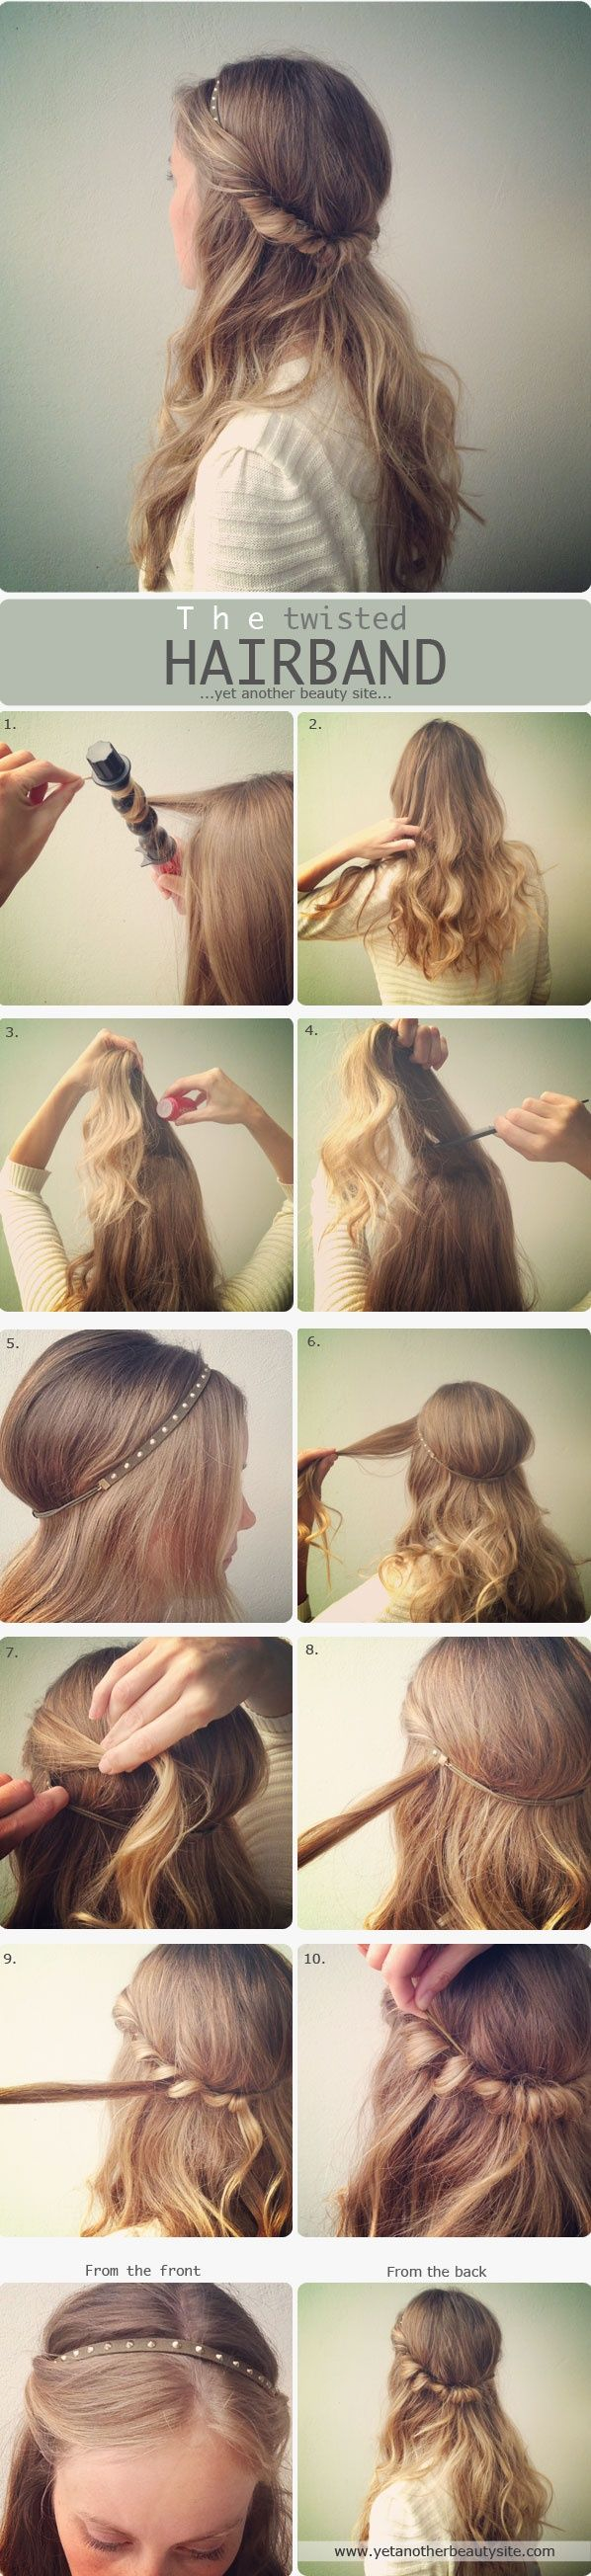 Hippie wedding hairstyle